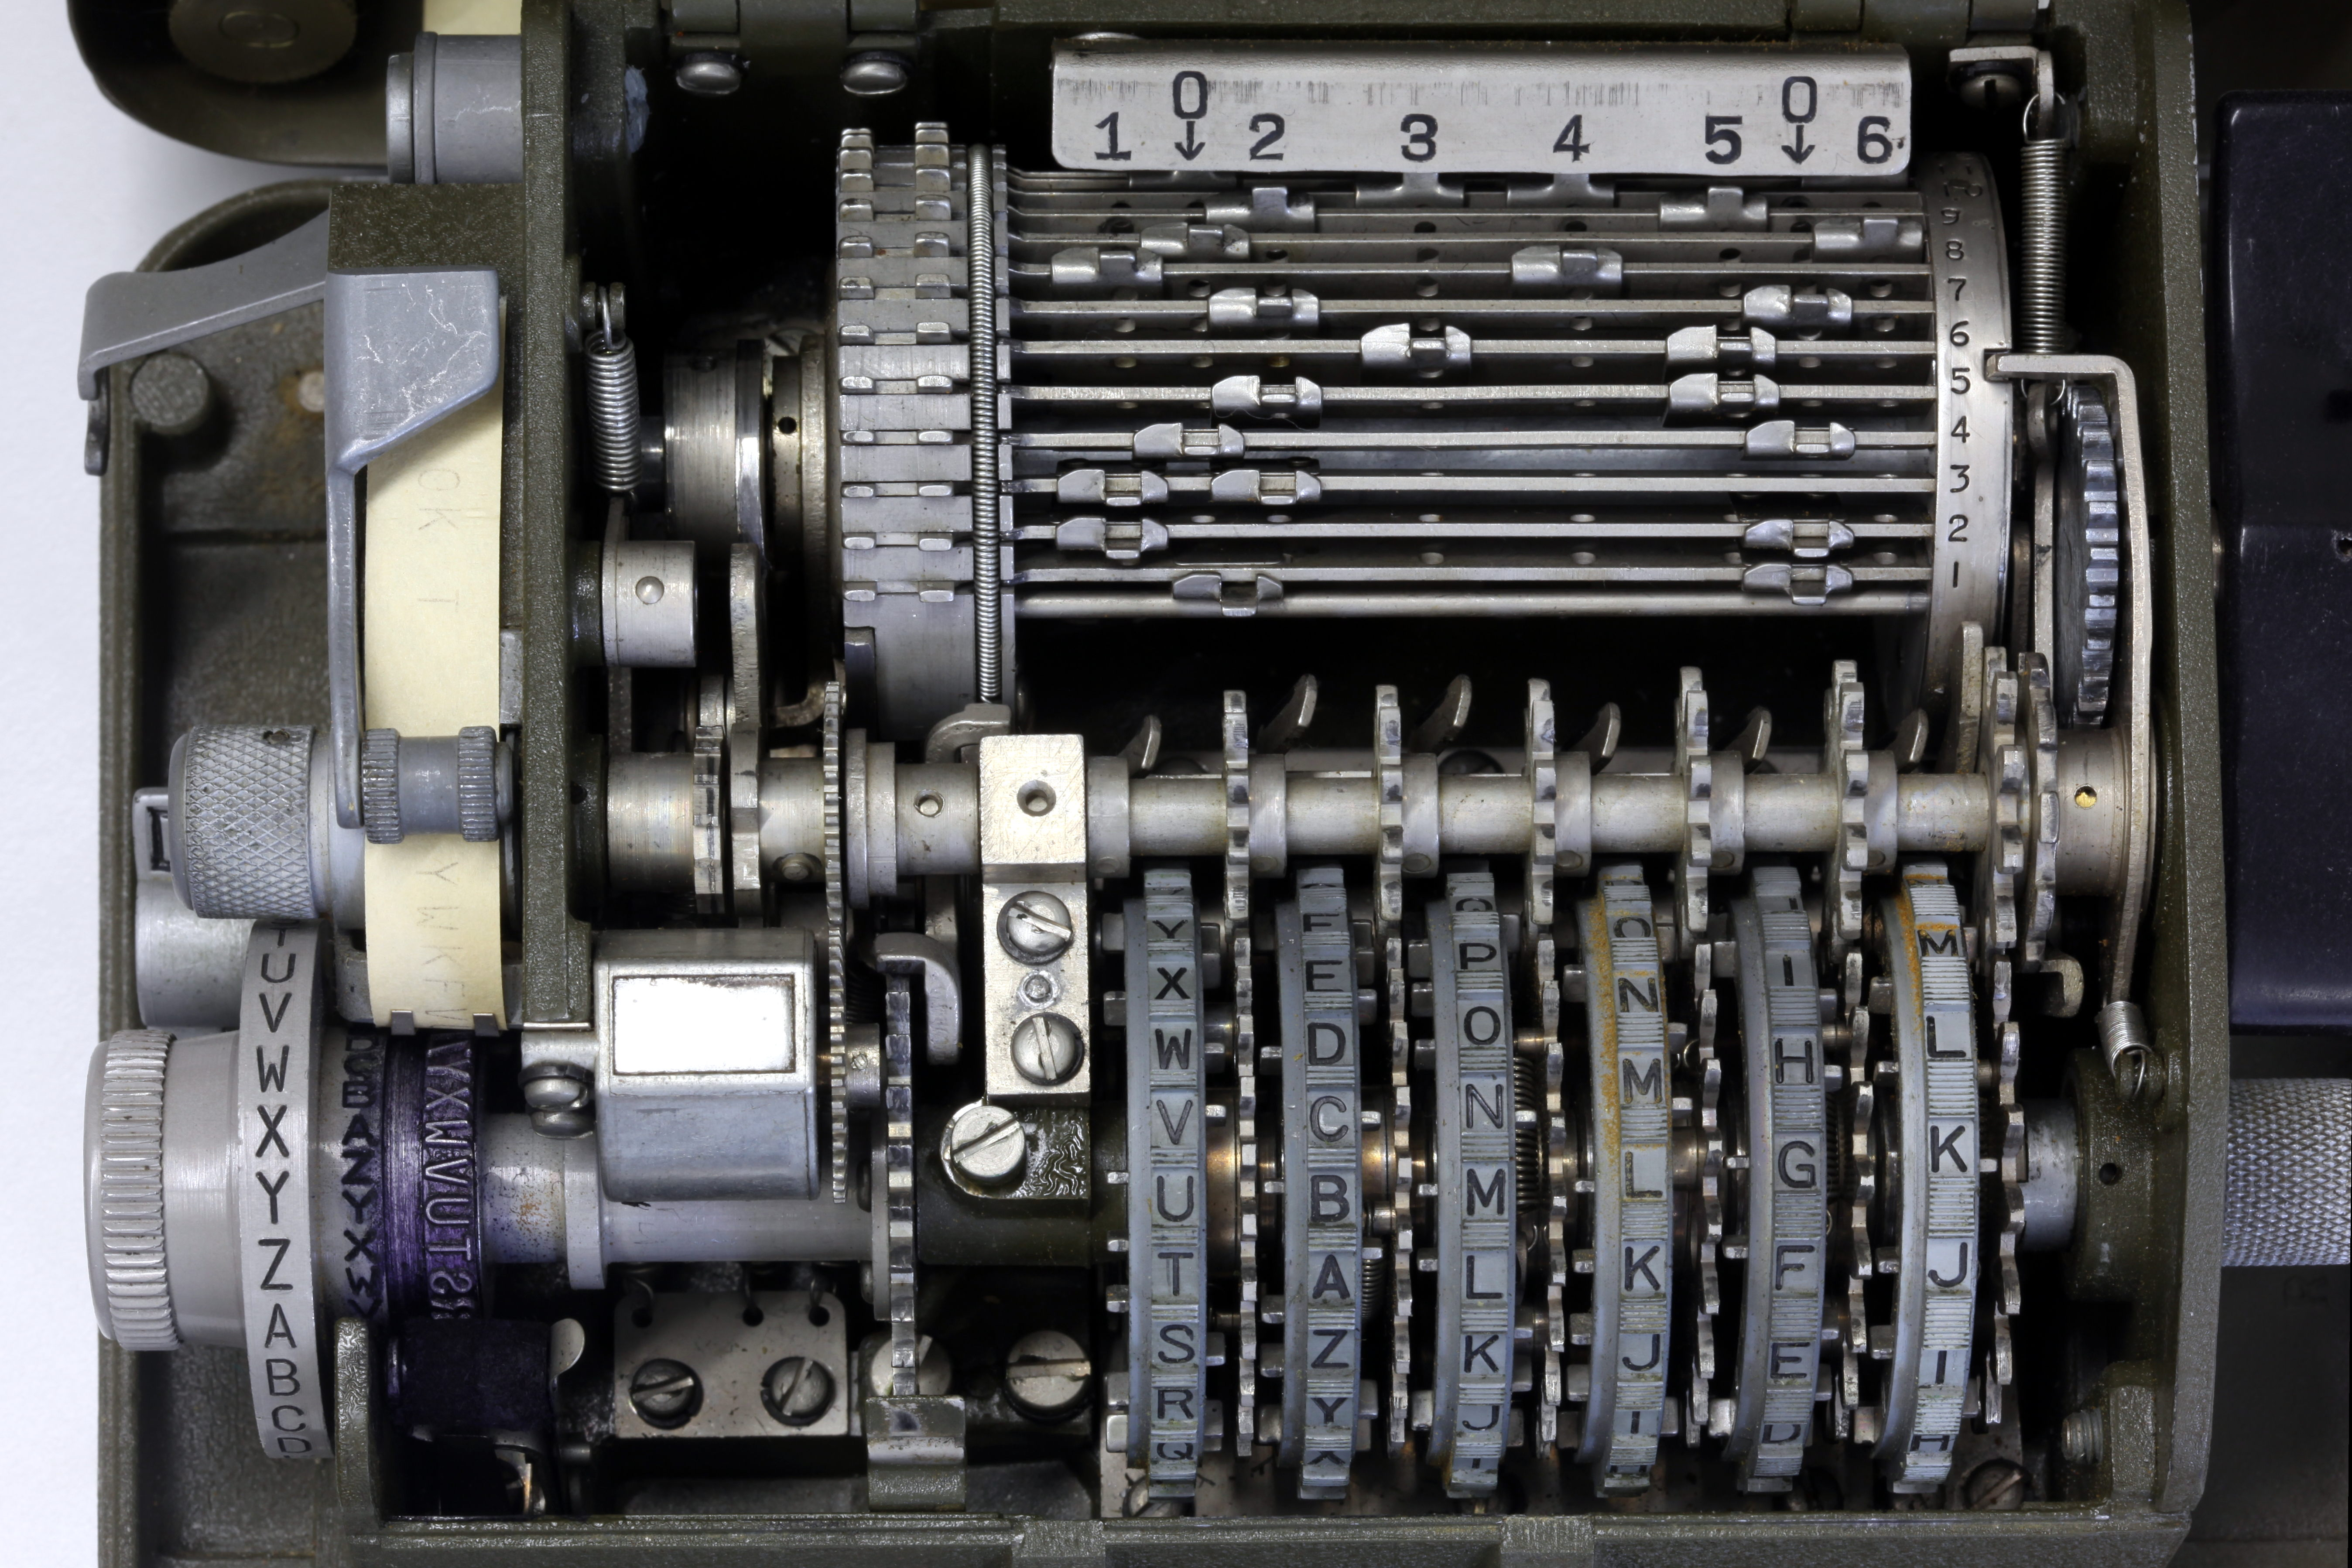 An Intermediate Gear Unit Center Meshes With Gears Adjoining Each Key Wheel Visible To The Left Of Image Are Paper Tape And Typewheel That Print